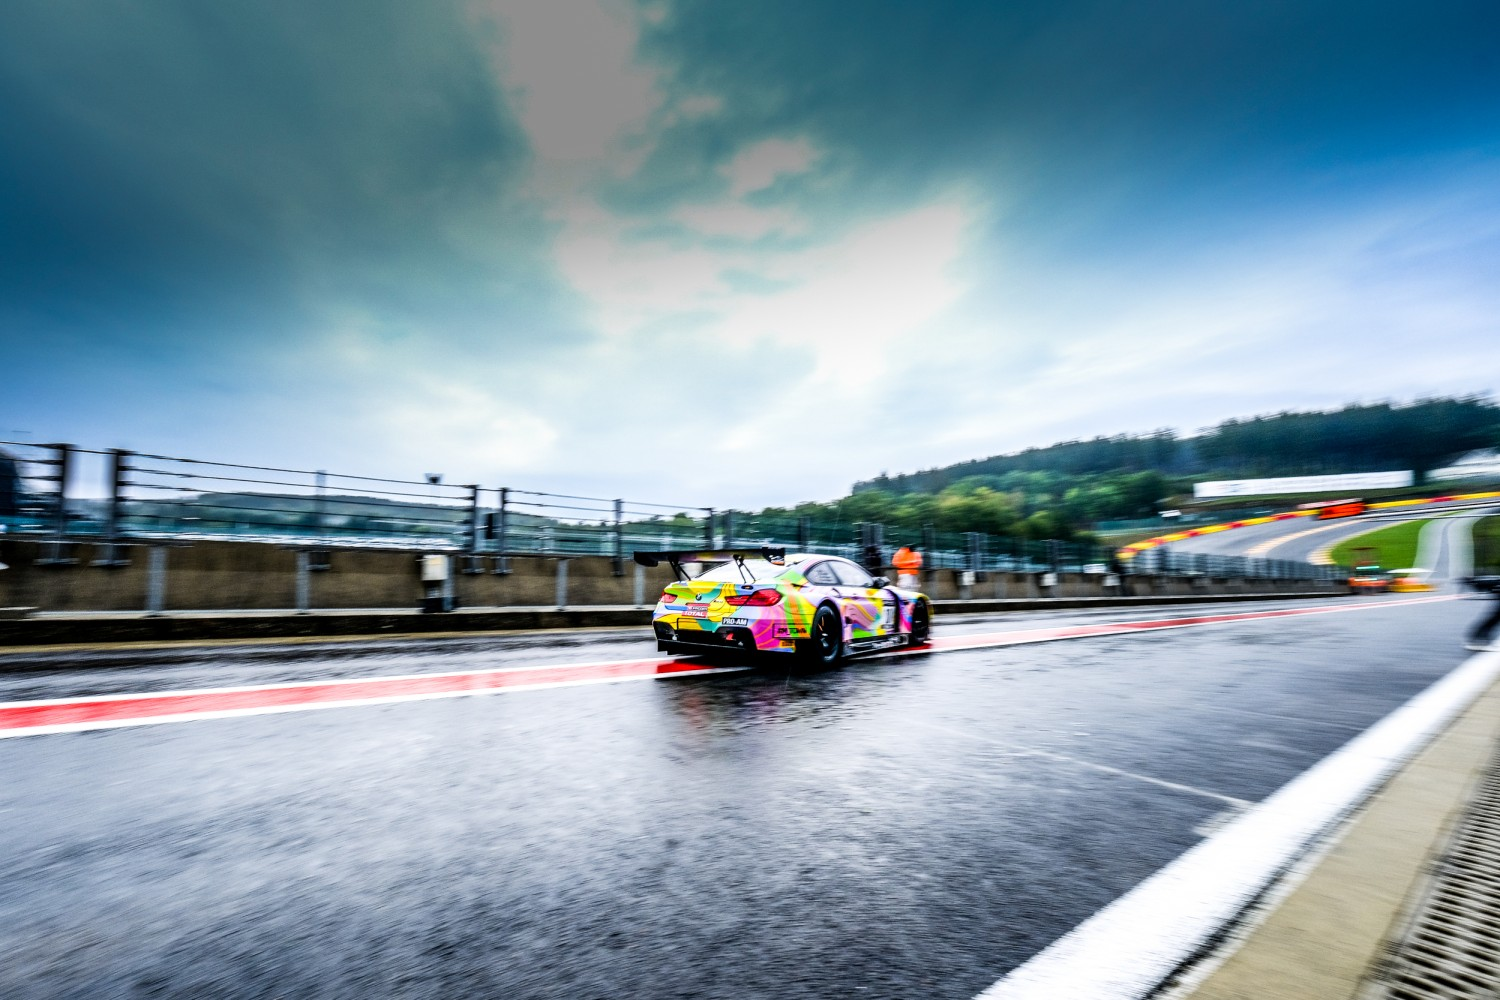 Spa-Francorchamps comes alive as Total 24 Hours of Spa test days get underway